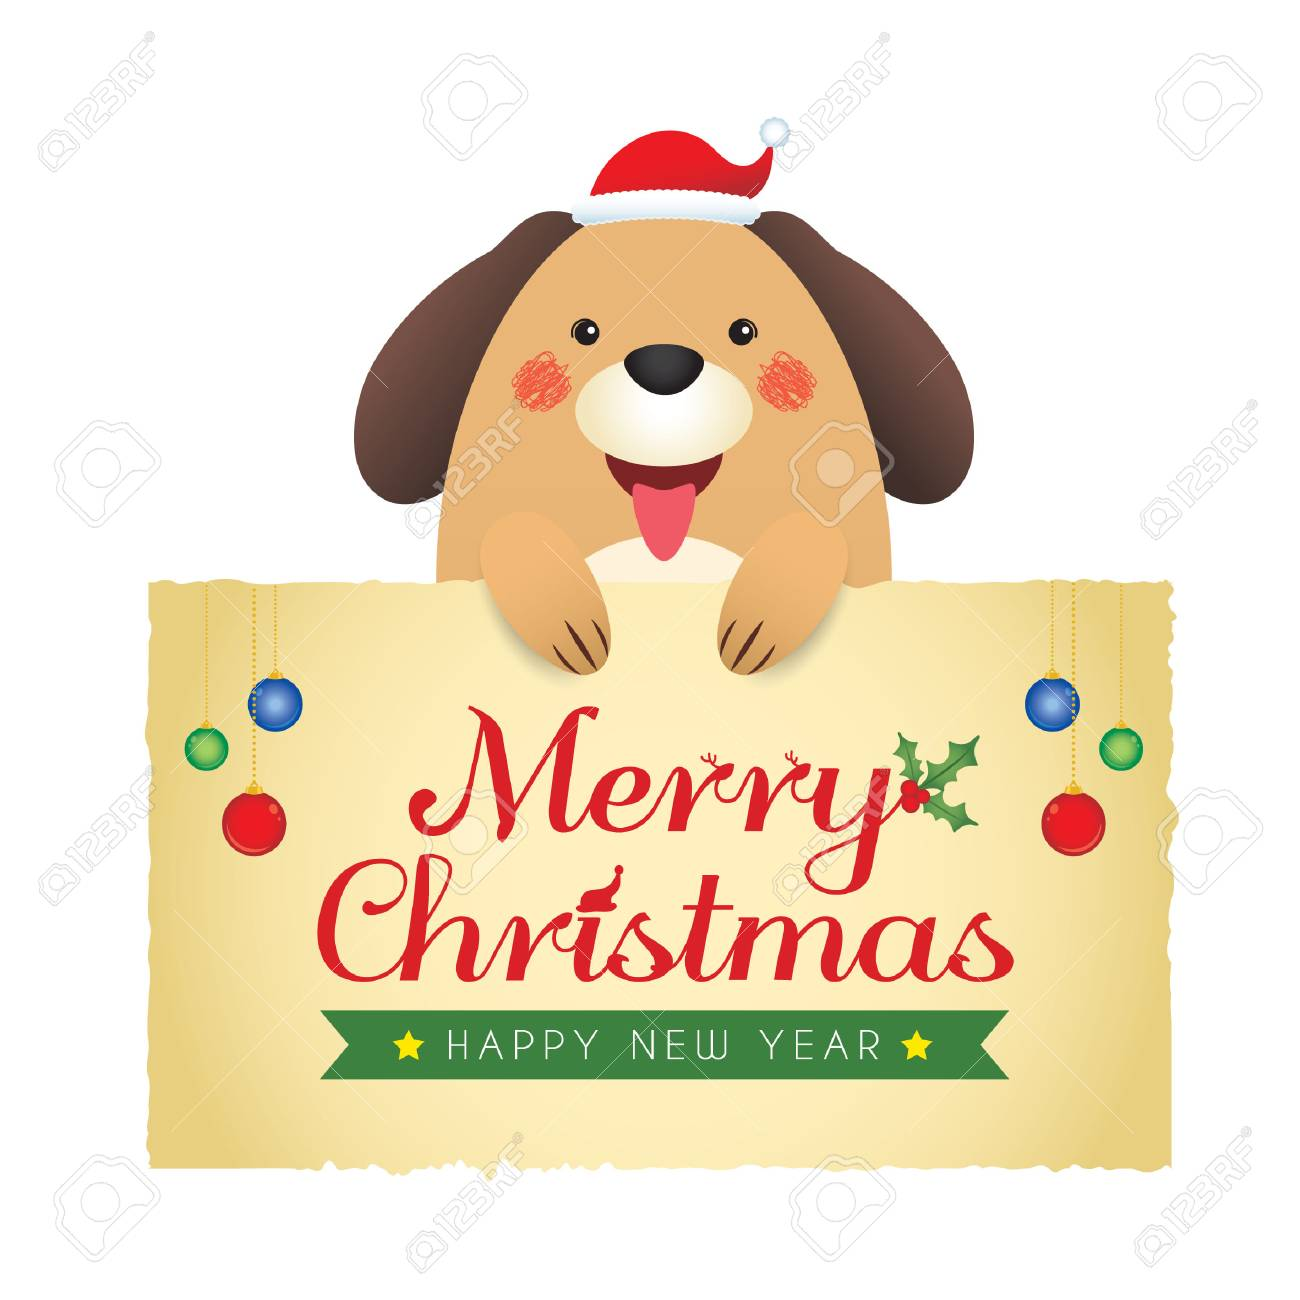 cute cartoon dog holding paper with christmas new year greetings isolated on white background